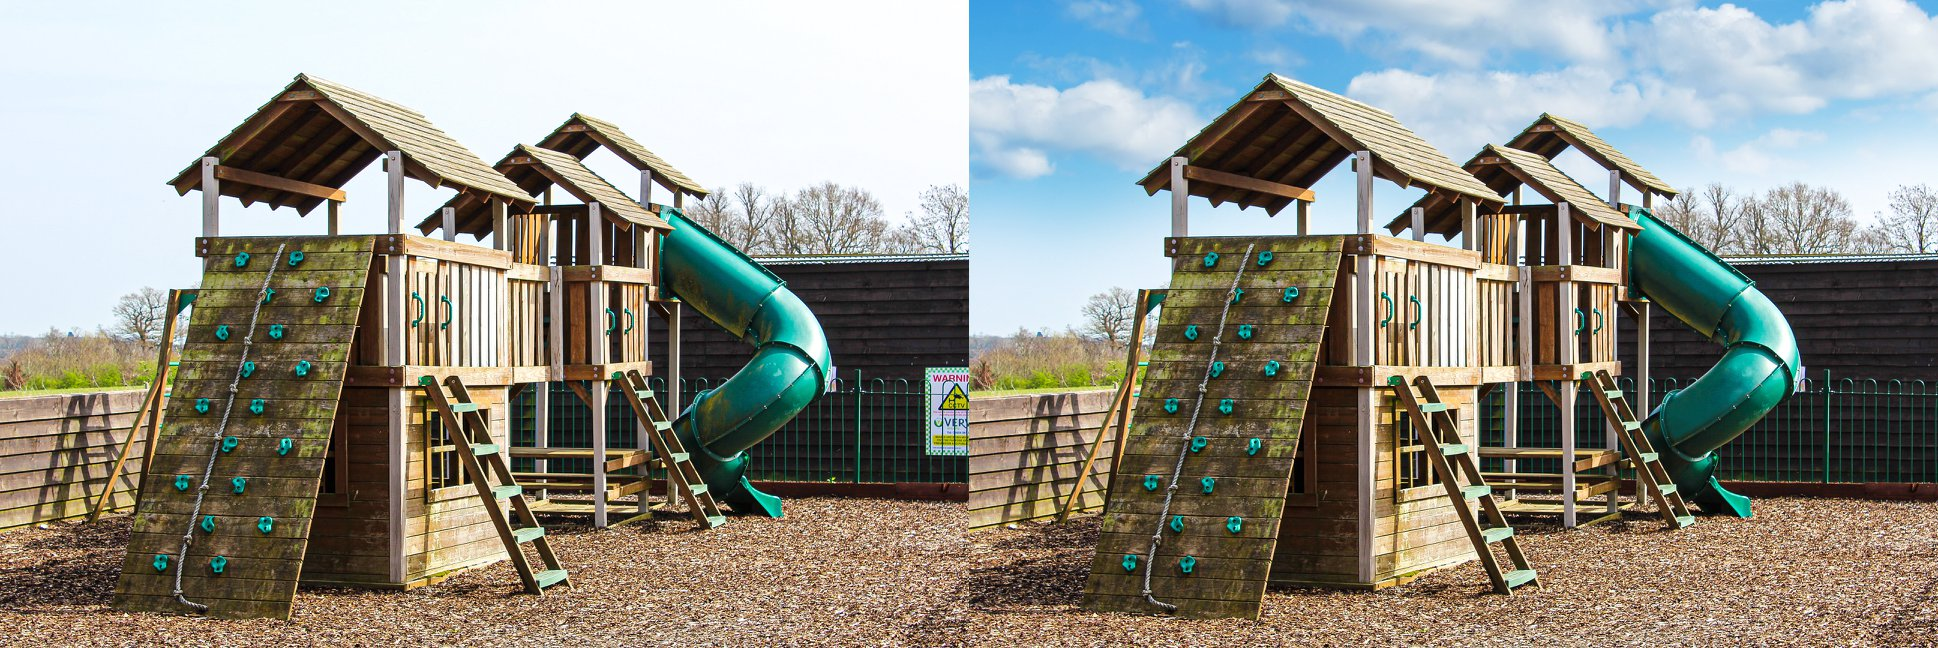 photoshop retouch daventry